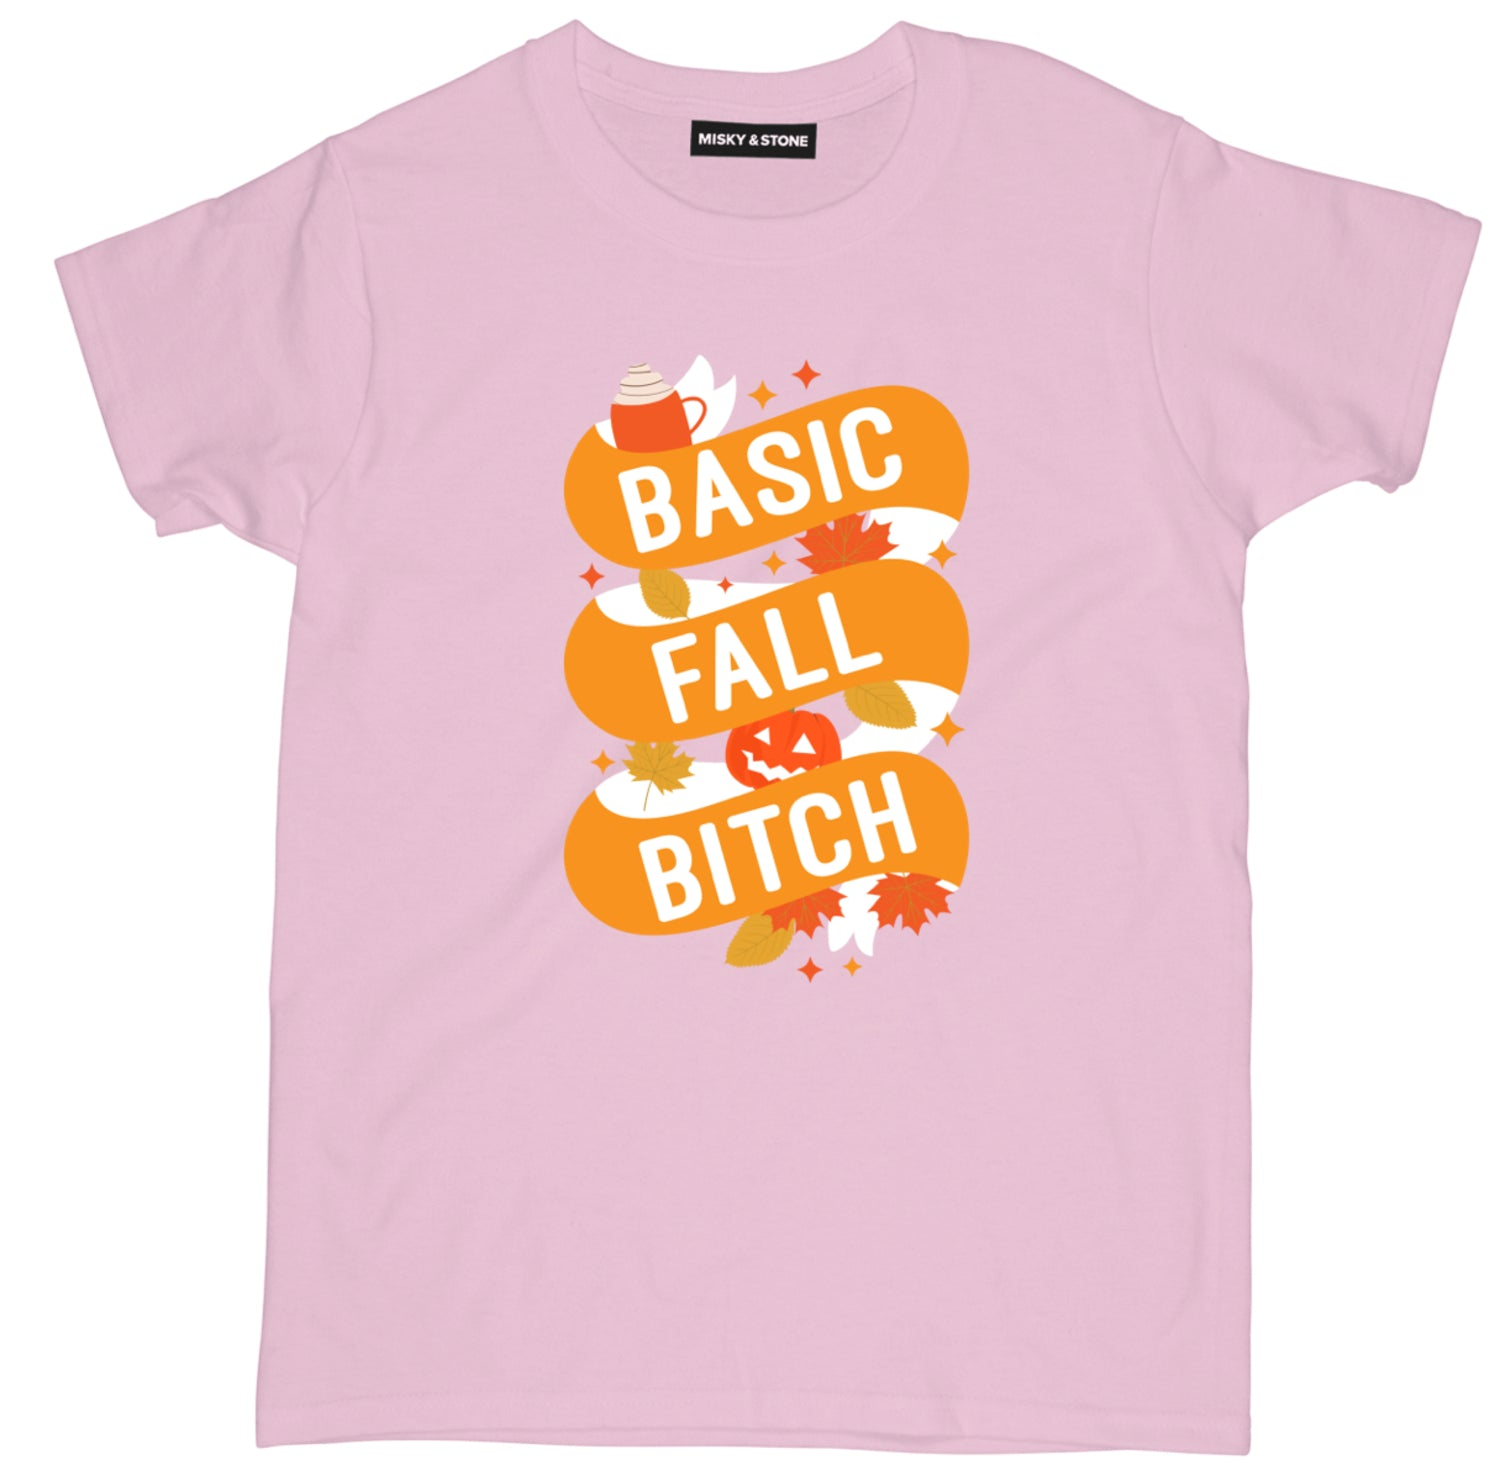 Basic Fall Bitch Tee